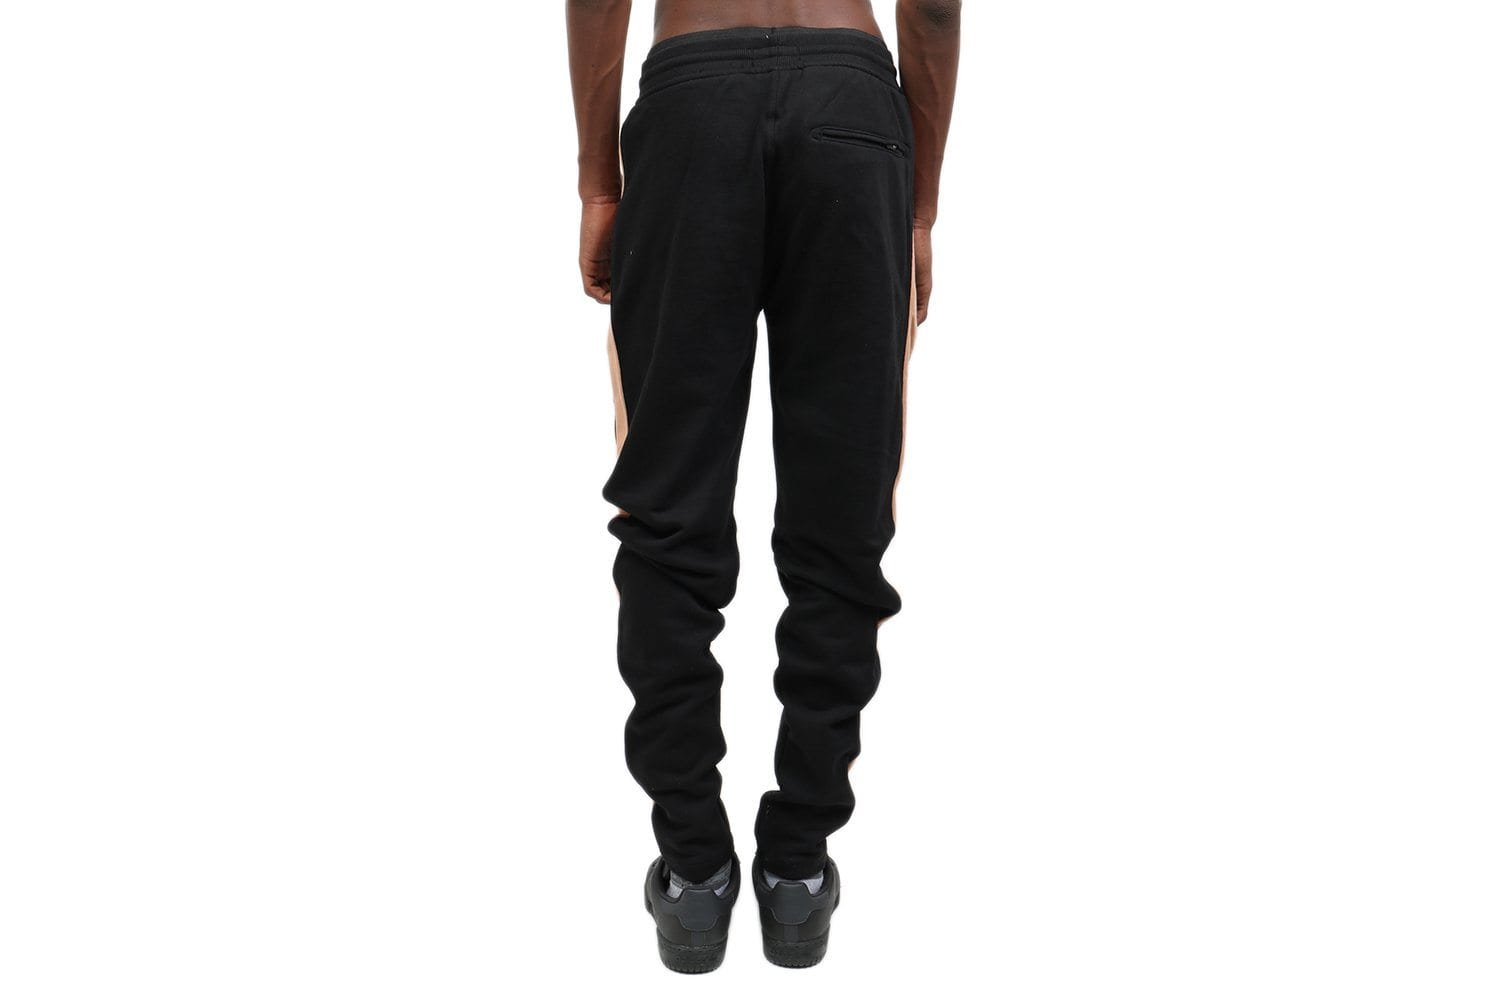 JUMPSHOT TRACKPANT 701-FT MENS SOFTGOODS ZANEROBE